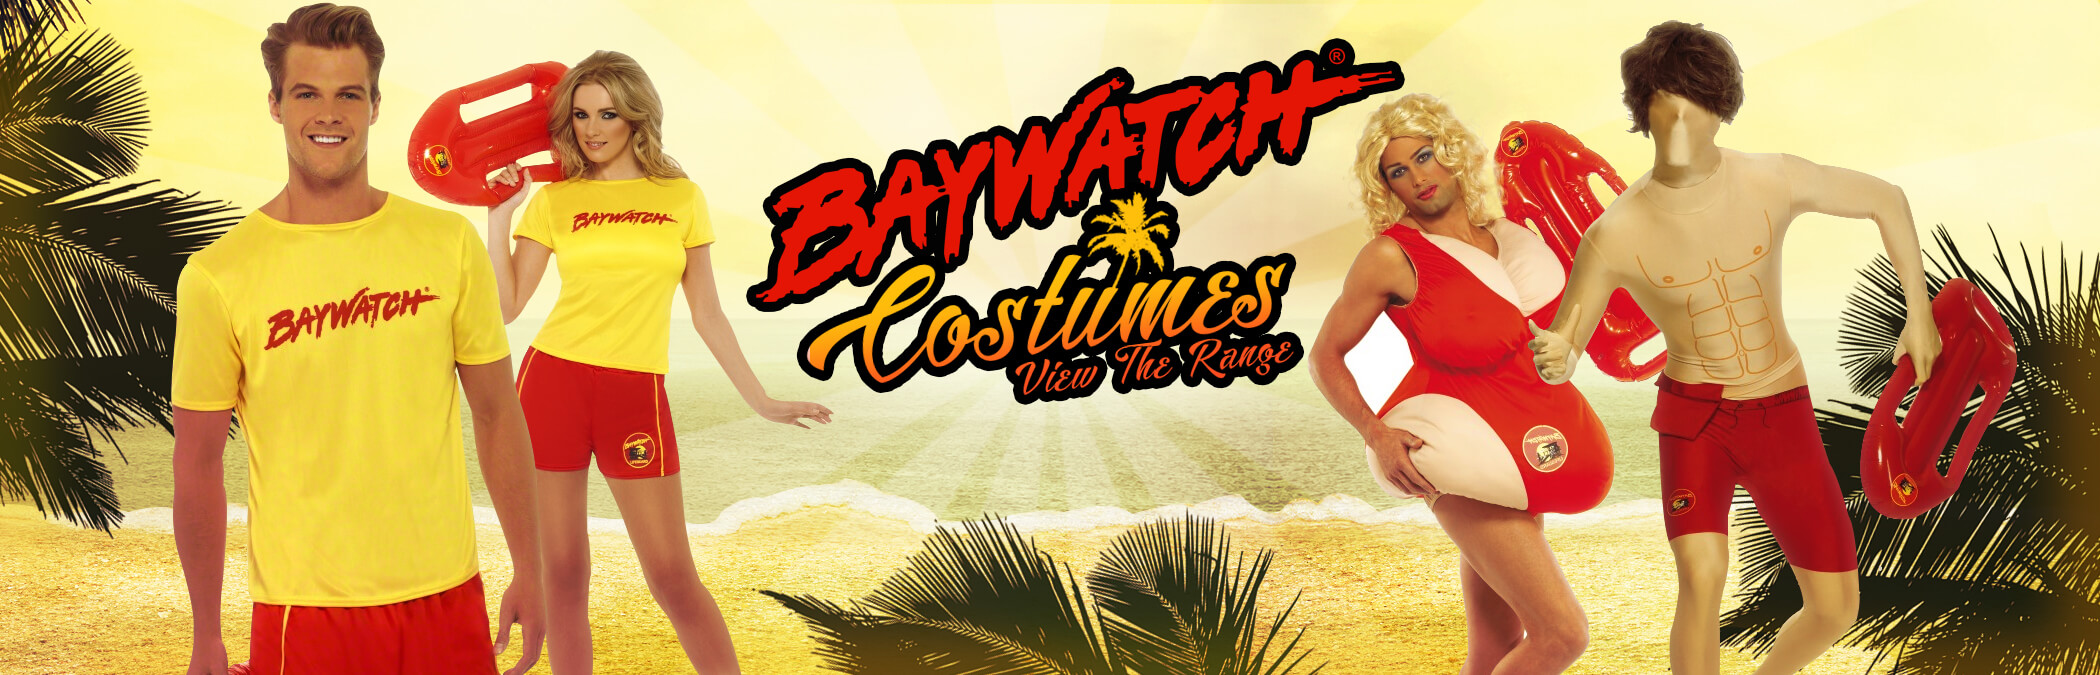 Baywatch Beach Costumes